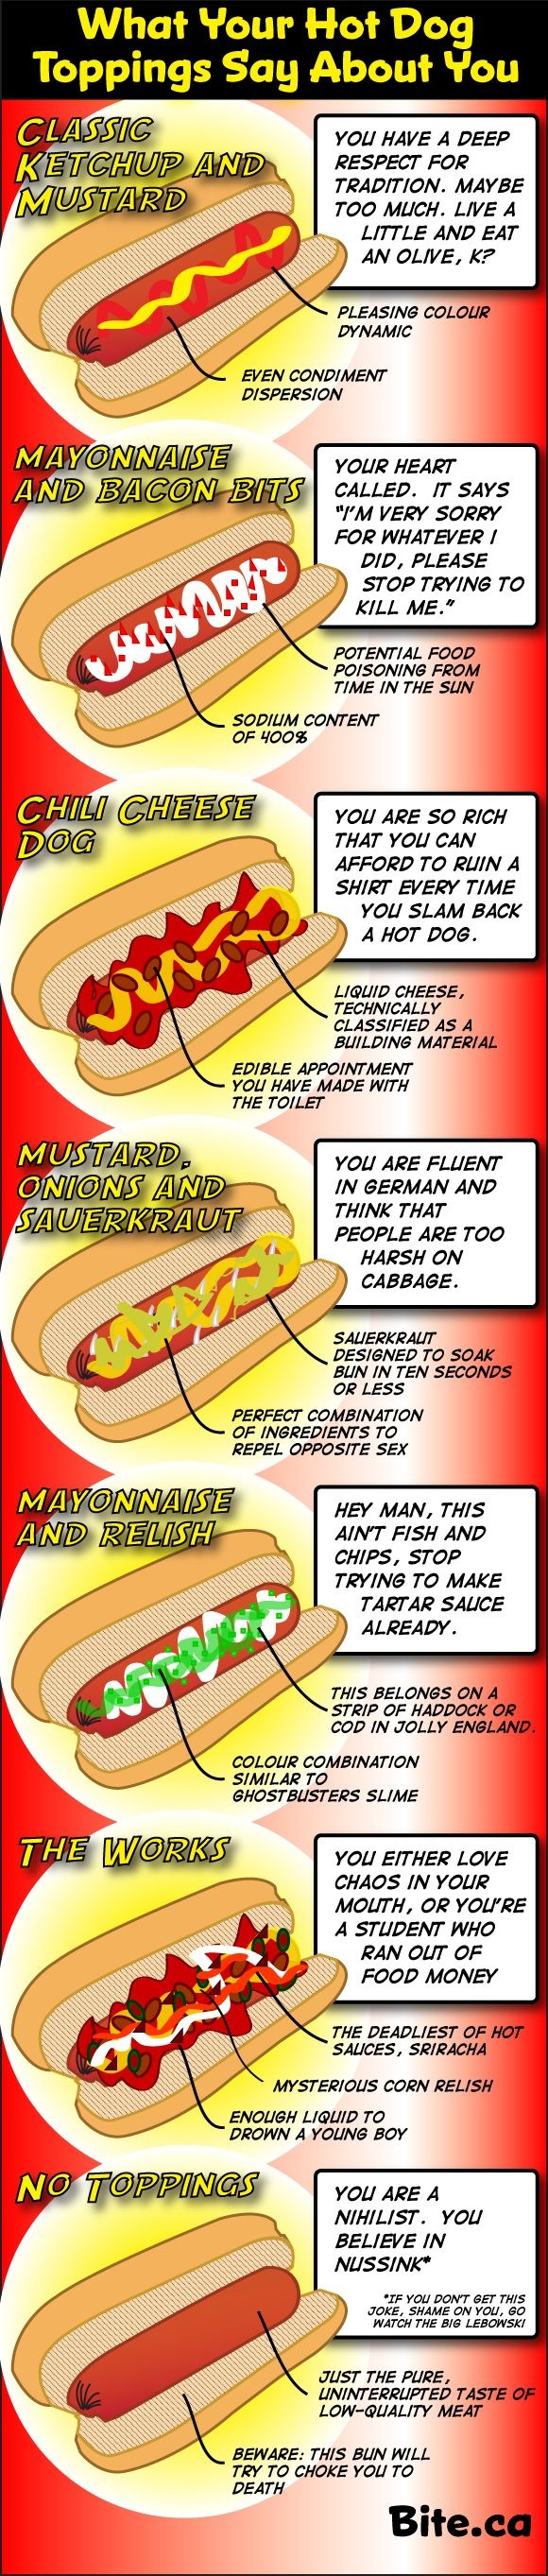 What does your hotdog toppings say about you?!?!